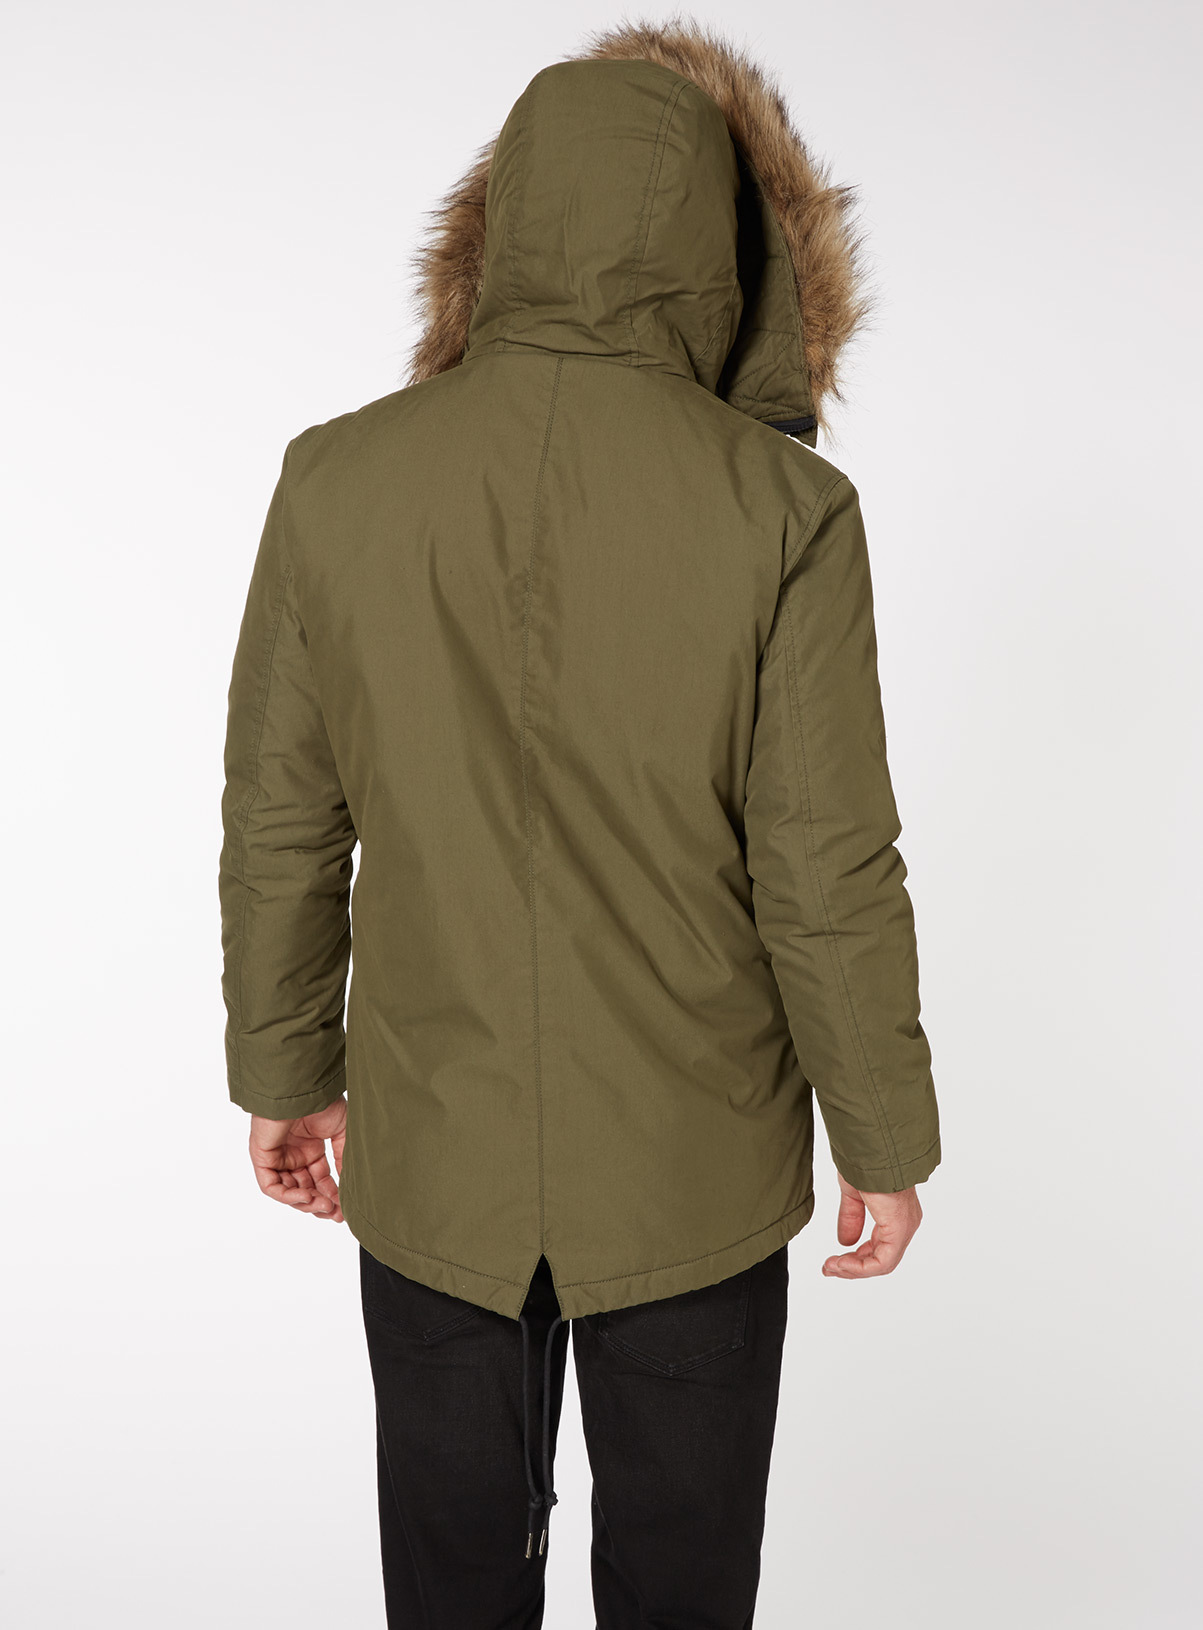 Mens Khaki Faux Fur Trim Hooded Parka Coat | Tu clothing